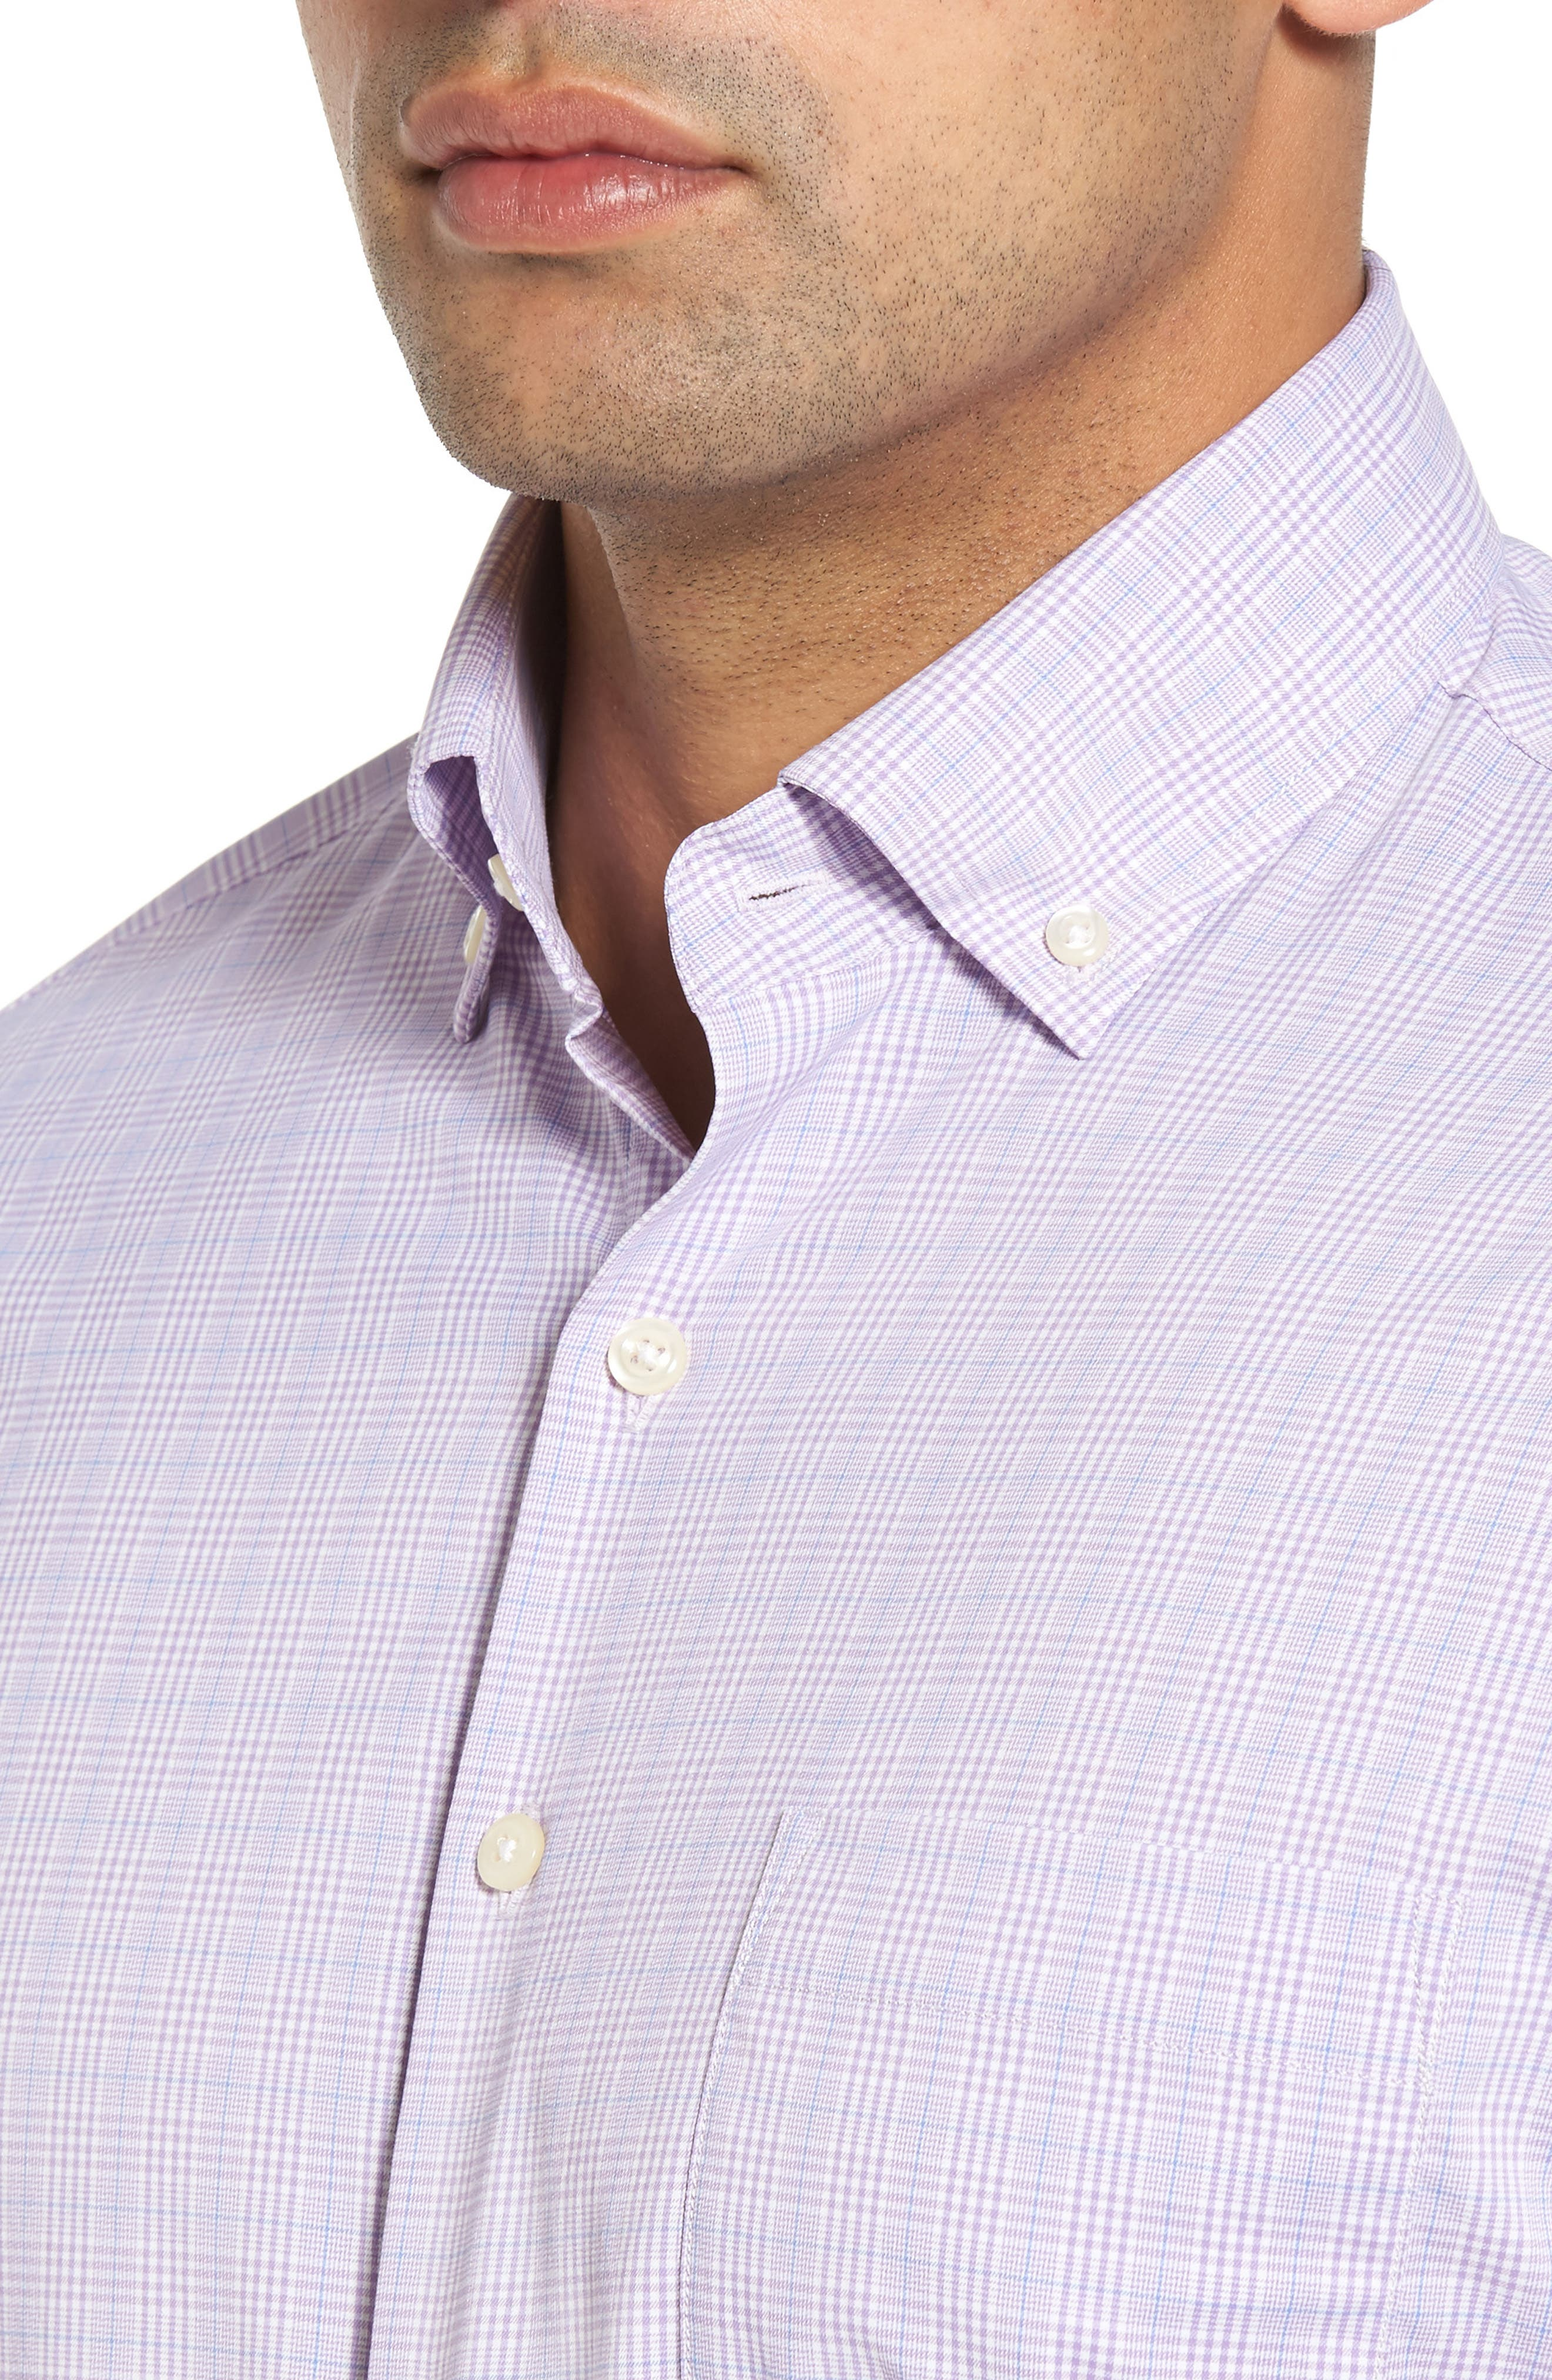 McConnell Plaid Regular Fit Performance Sport Shirt,                             Alternate thumbnail 4, color,                             Muscadine